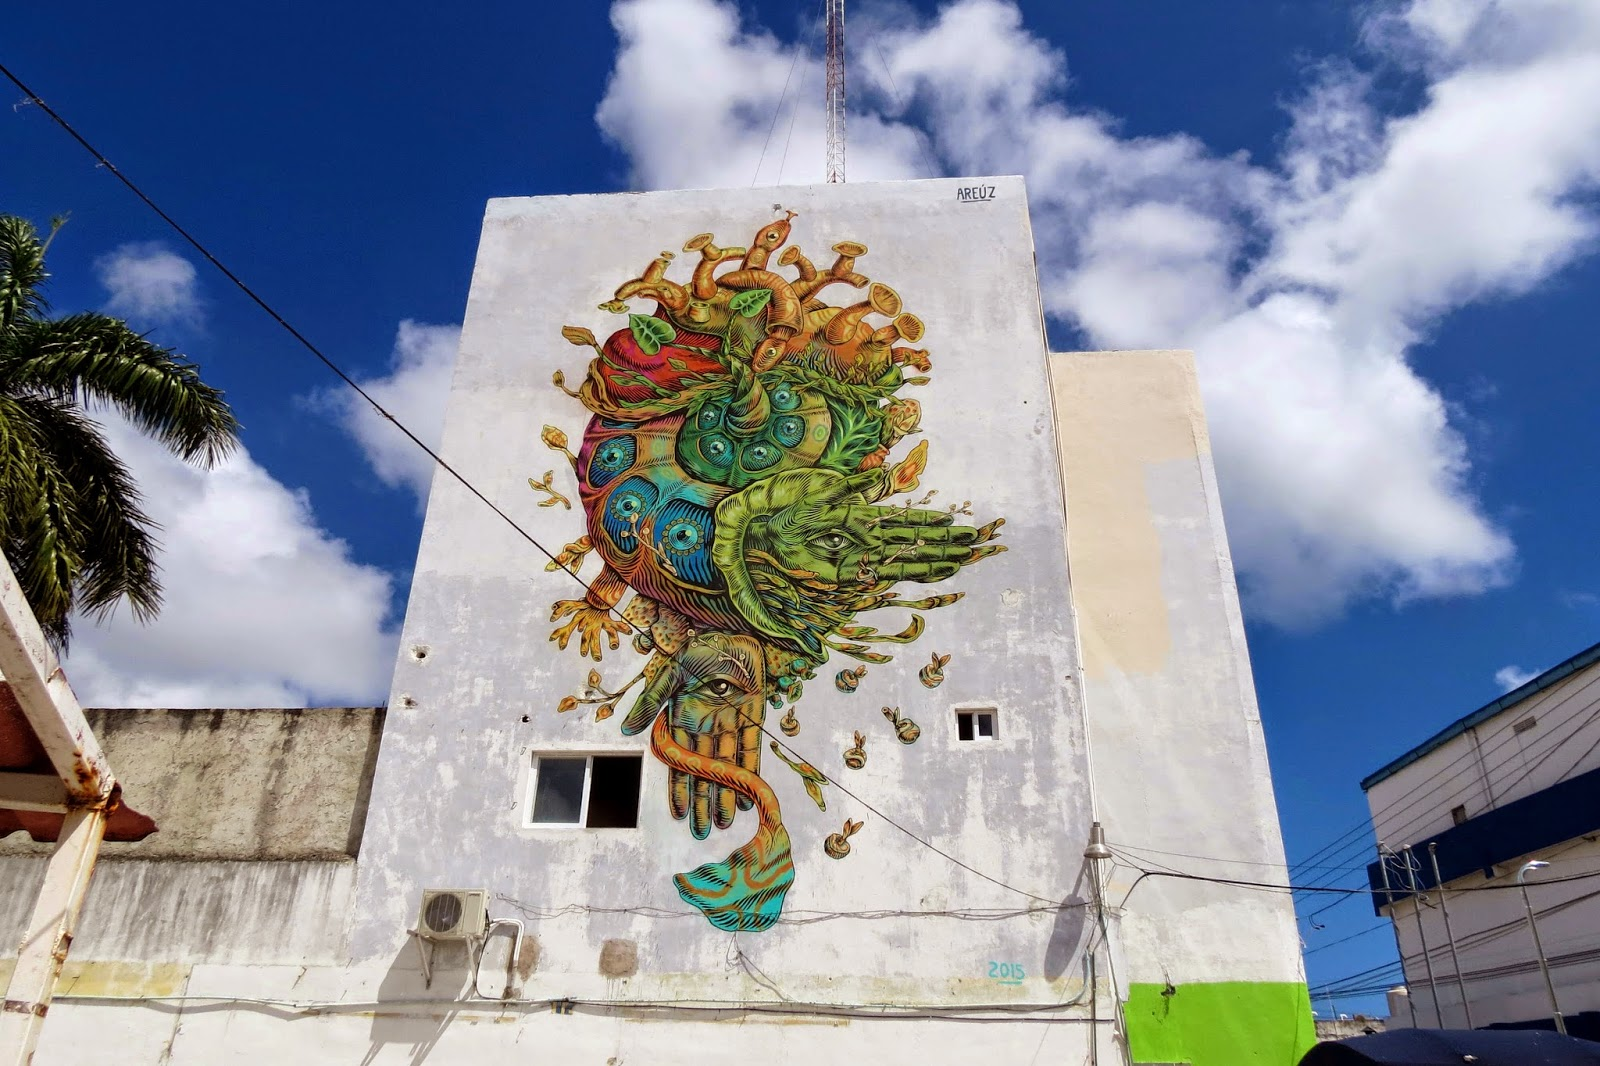 Mexican artist Gonzalo Areúz recently spent some time on the streets of Cancun, Mexico for the FIAP 2015 Street Art Festival.